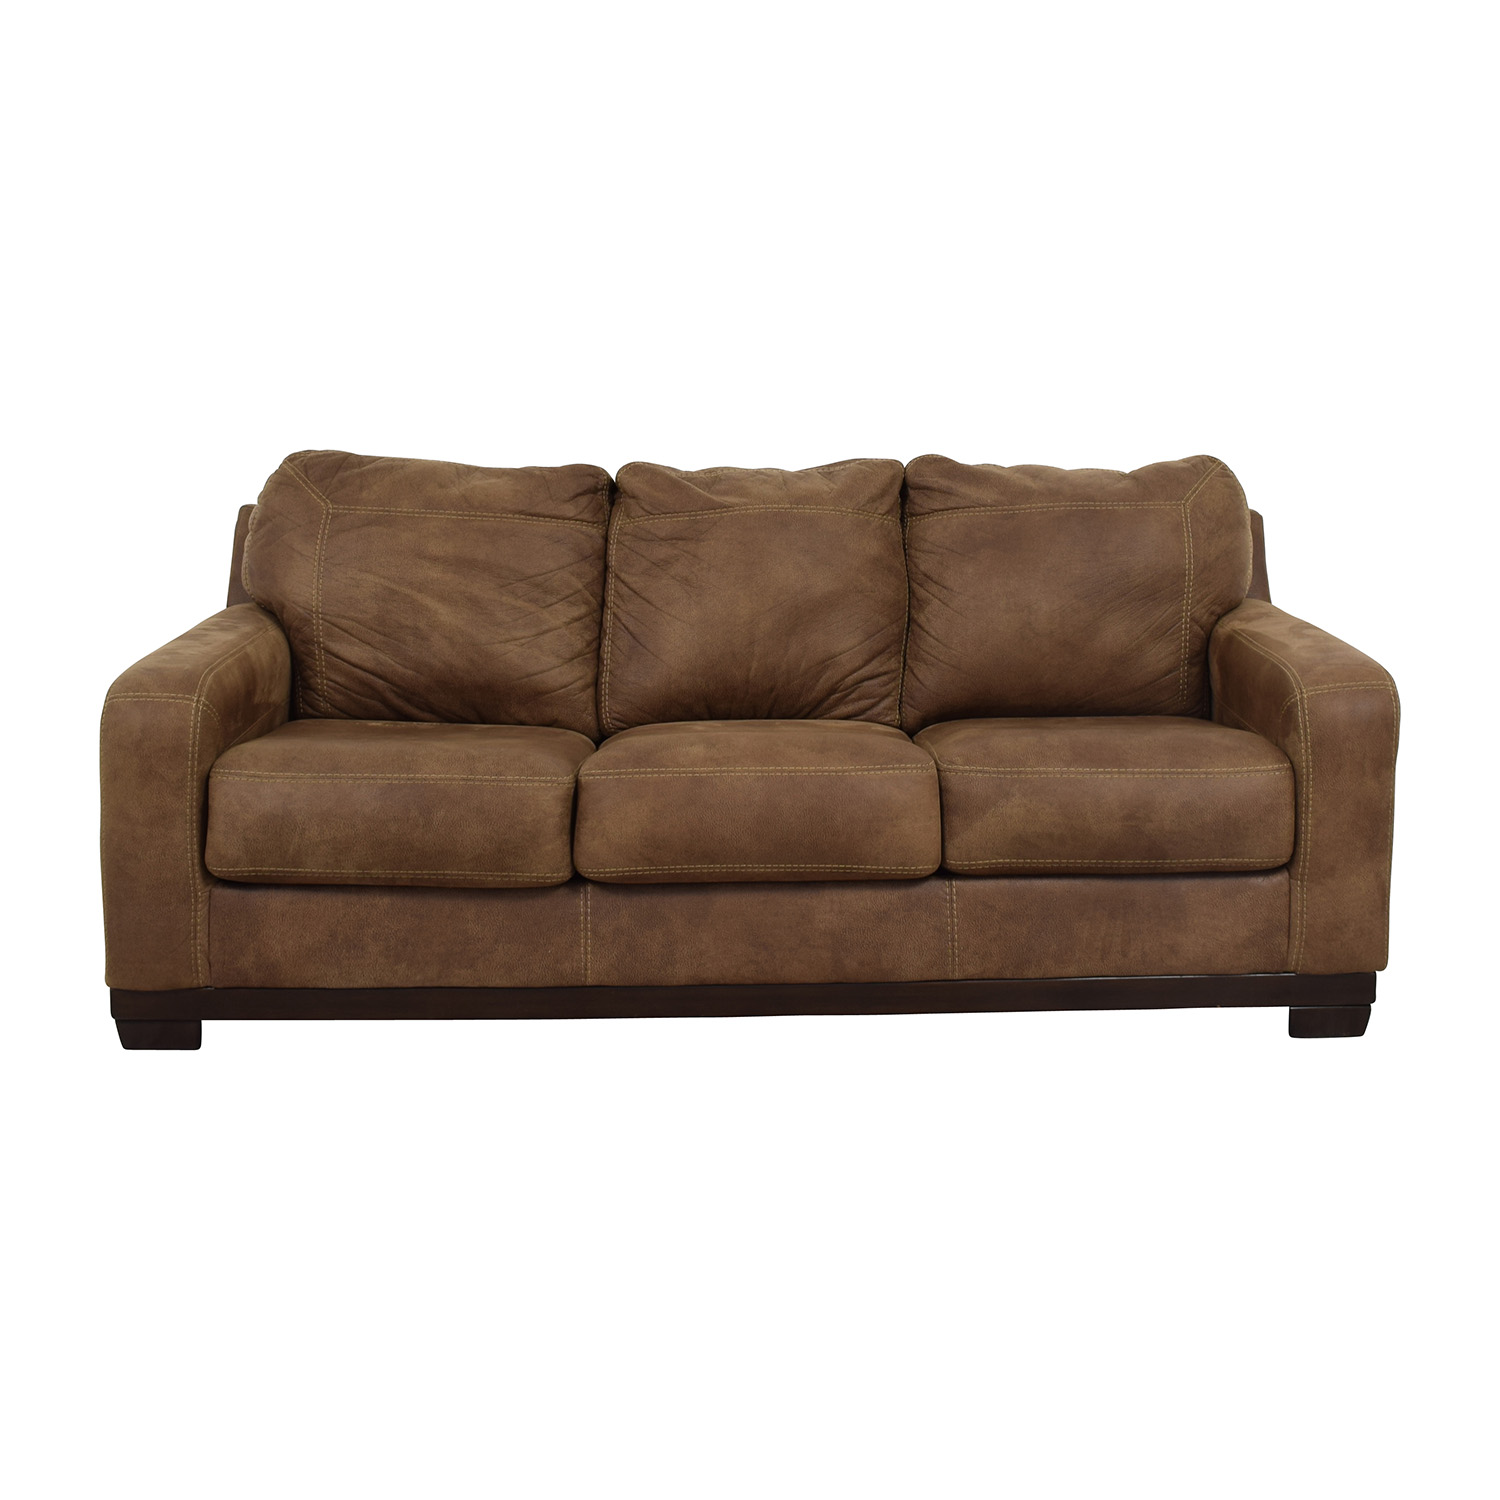 Loveseat Sofa Bed Ashley Furniture: Beige With Red Stripe Three-Cushion Slipcover